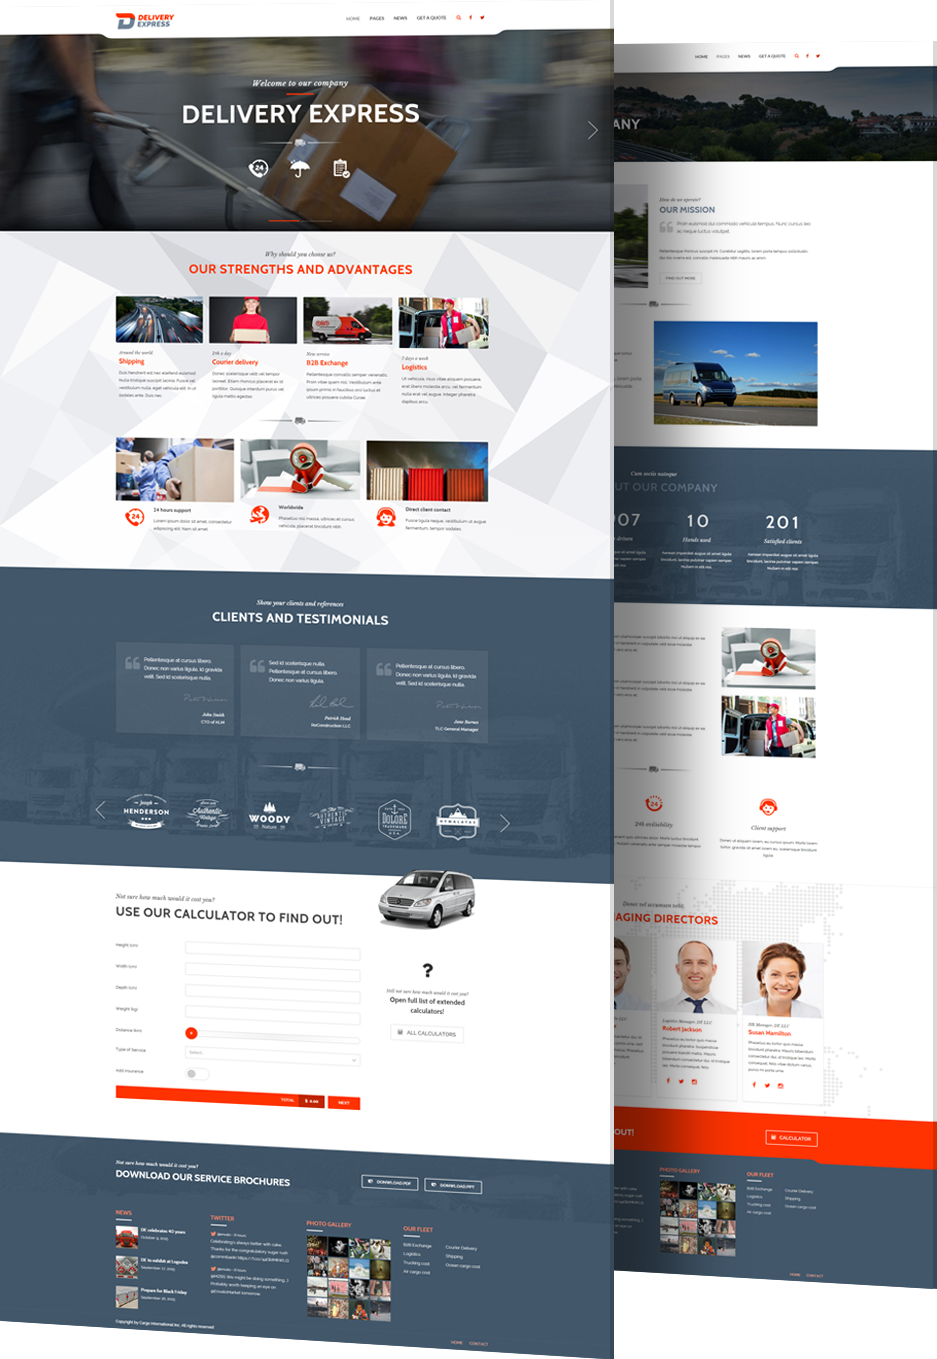 http://cargo.bold-themes.com/wp-content/uploads/2015/11/Splash-screens-right.png